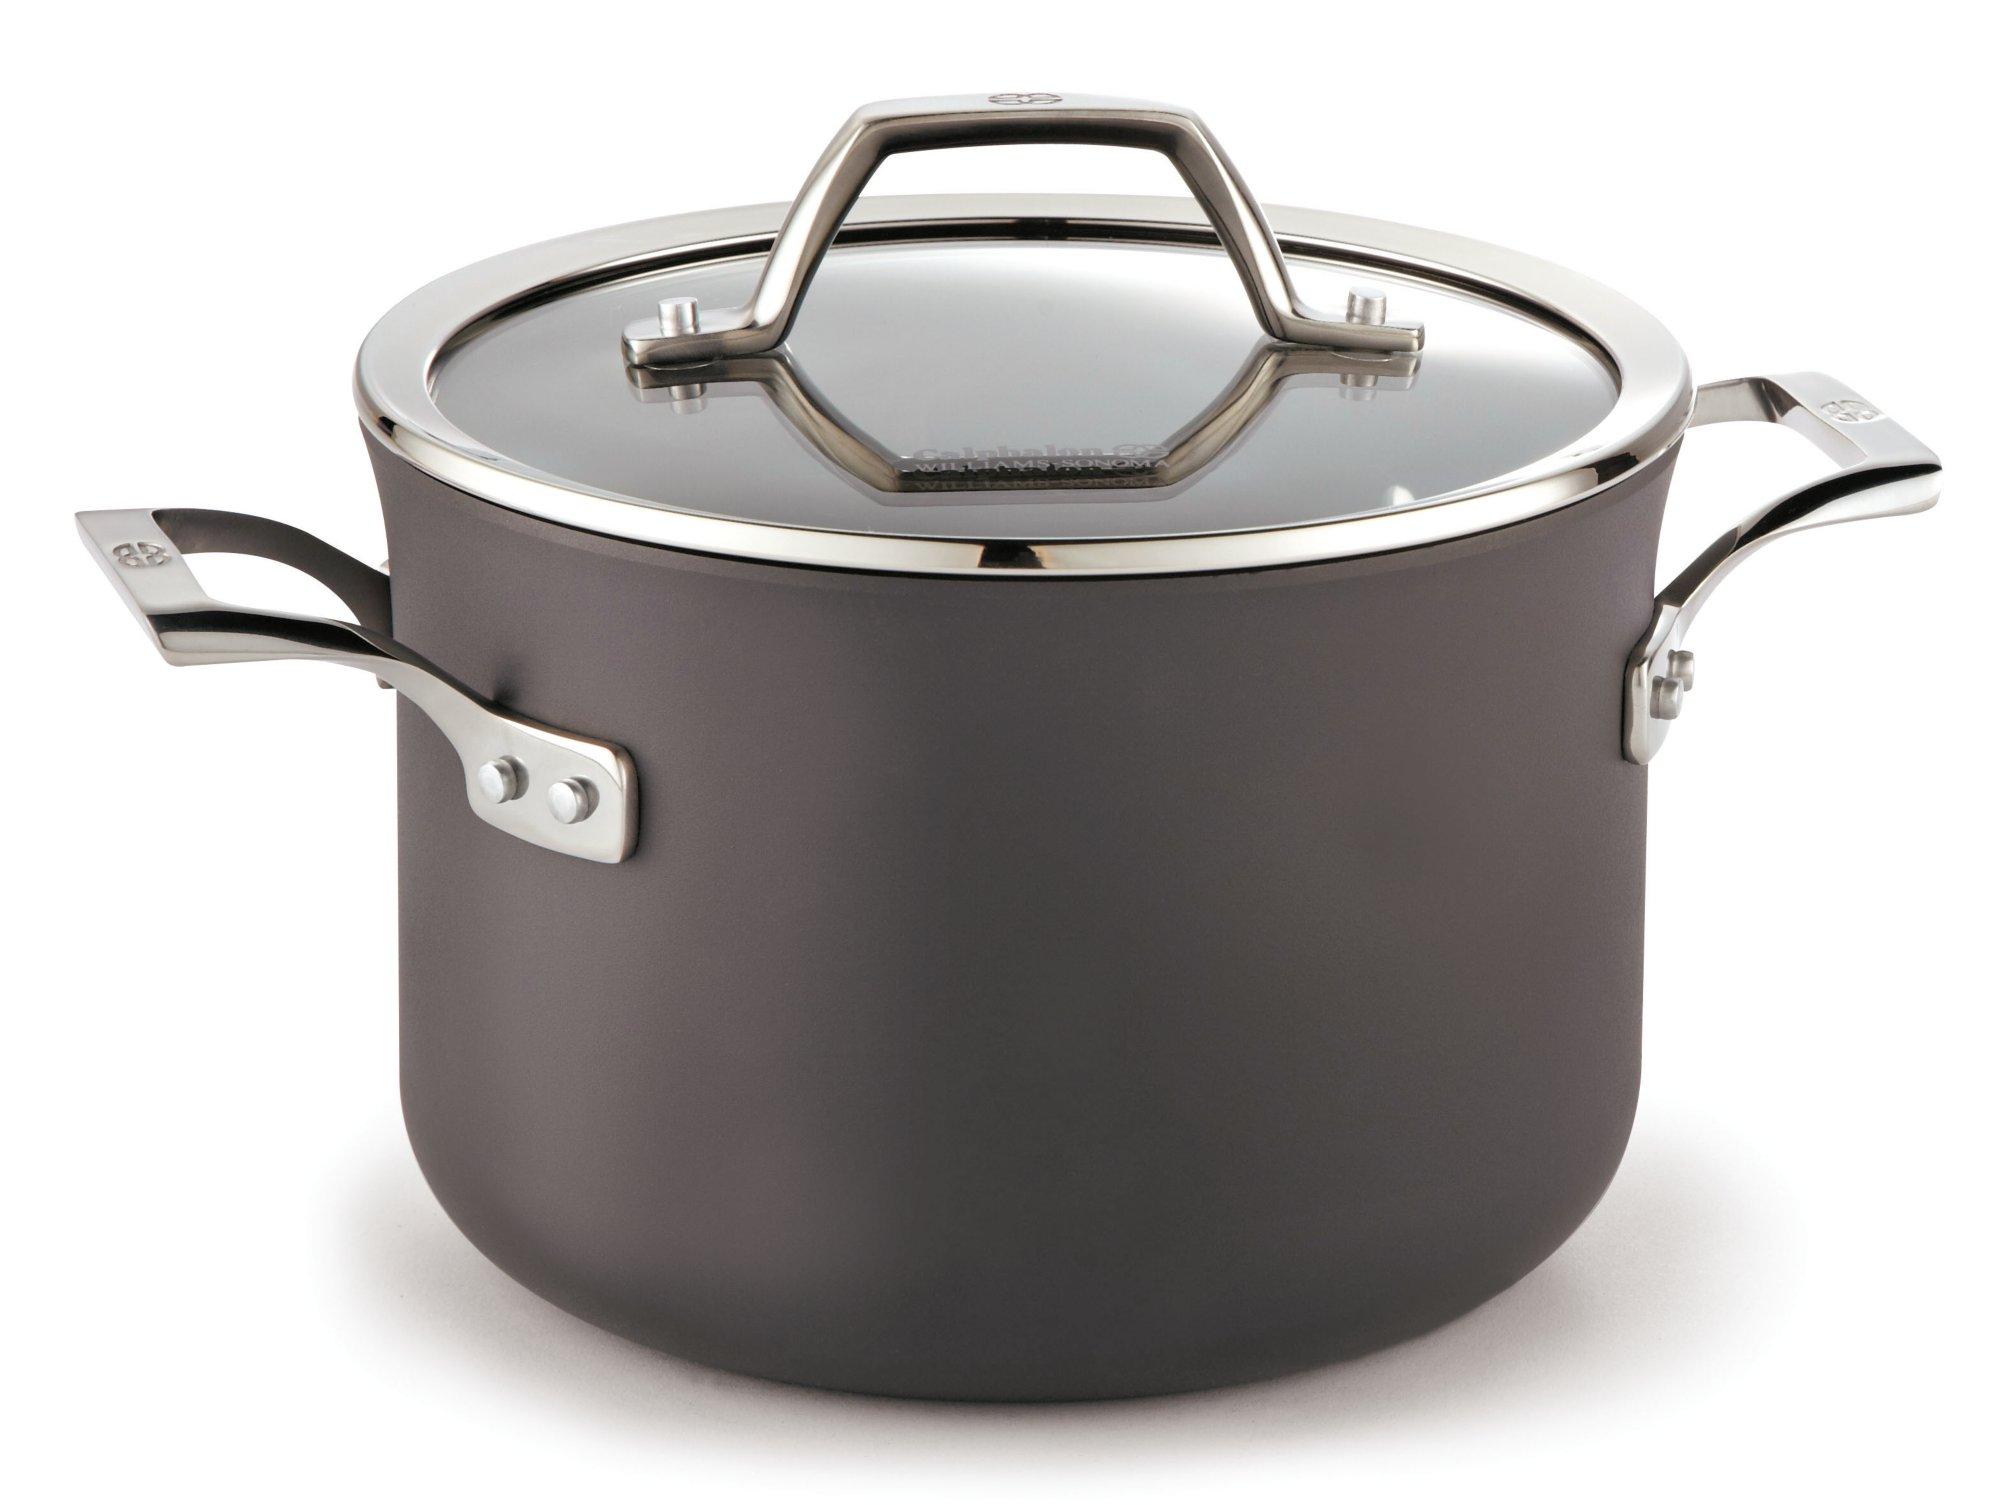 Calphalon Williams-Sonoma Elite Nonstick 4.5-qt. Soup Pot with Cover